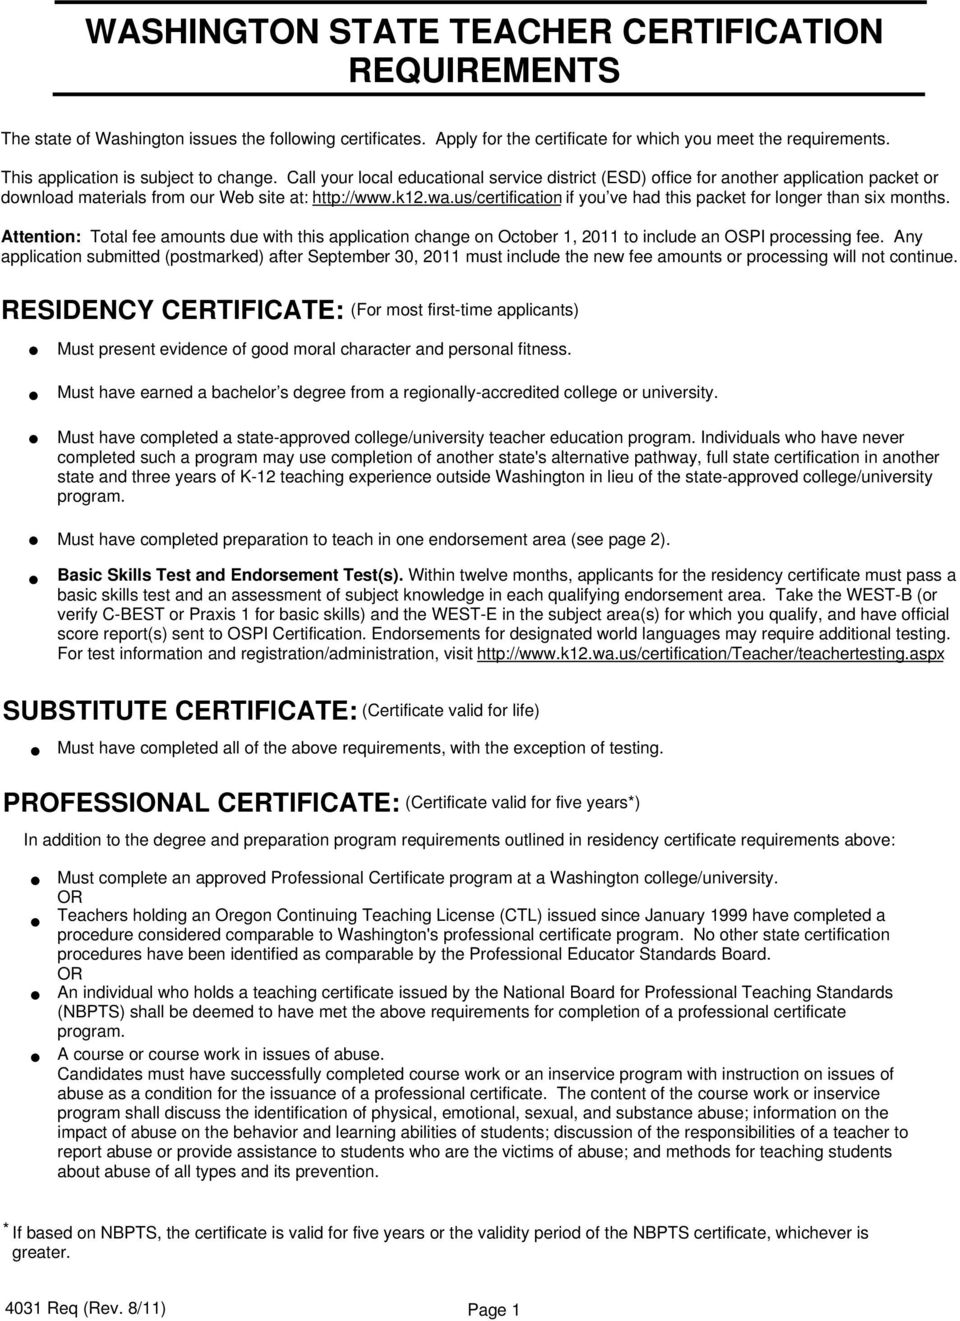 Washington State Teacher Certification Requirements Pdf